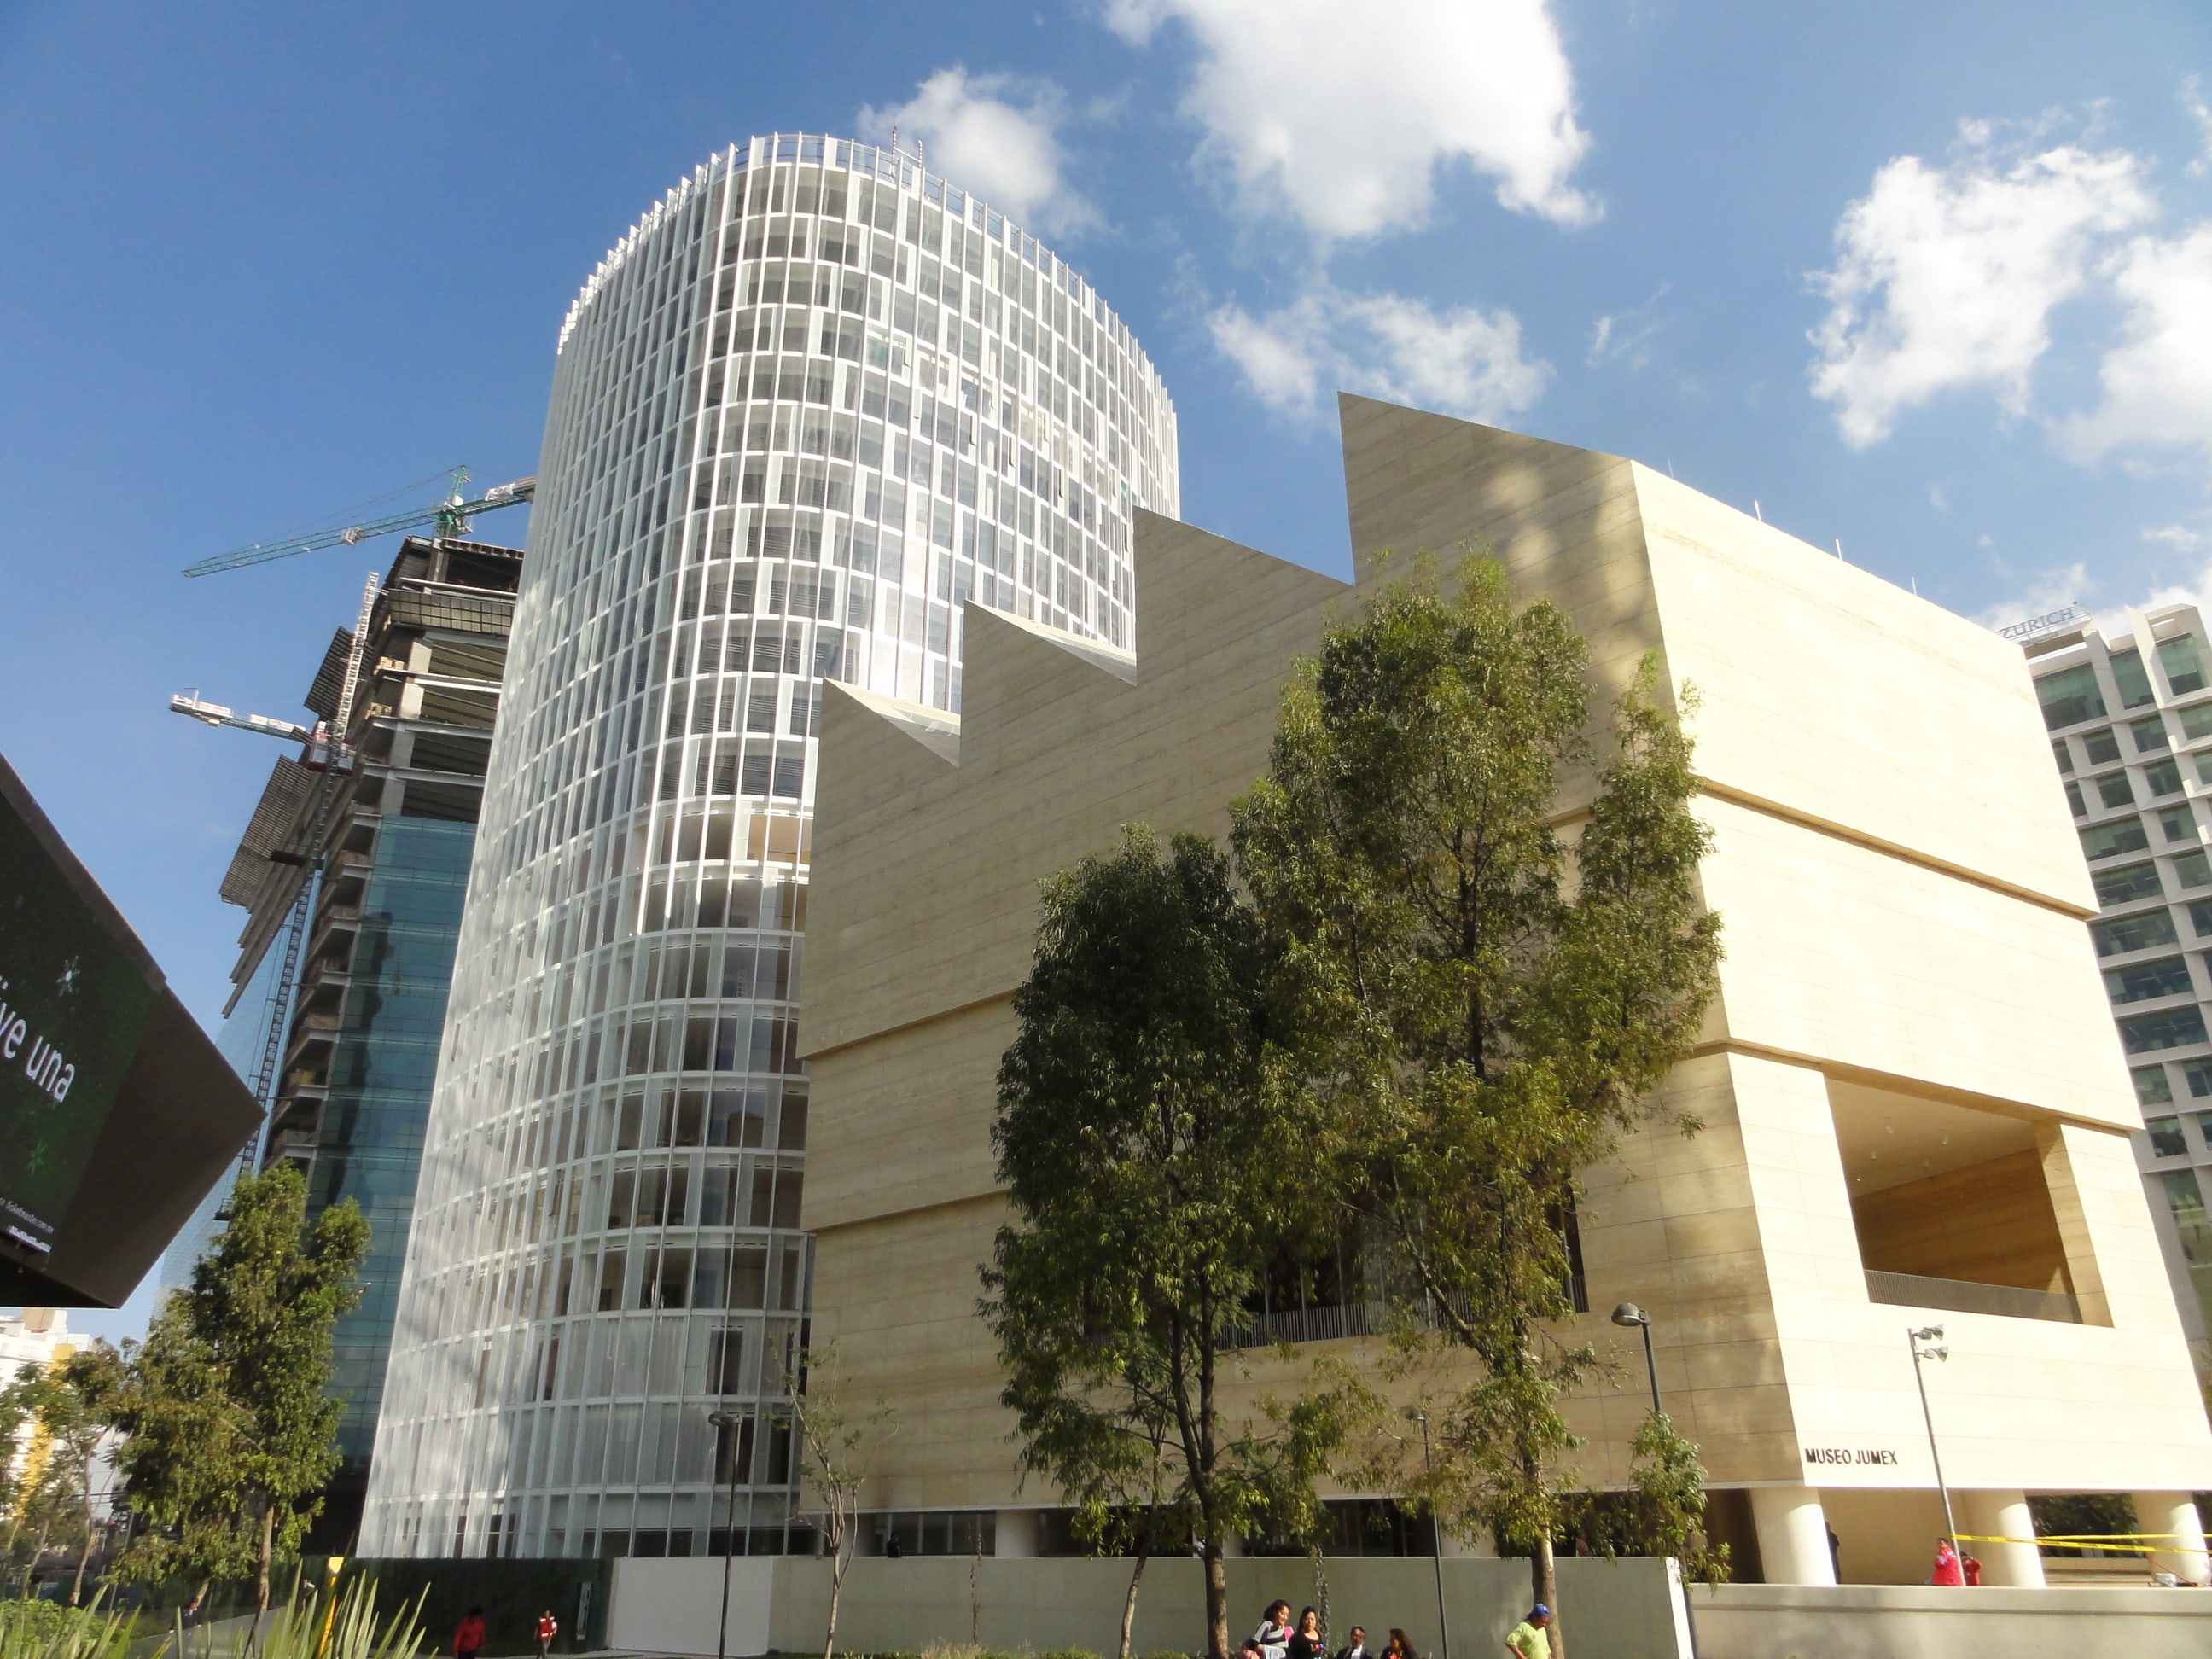 Museo De Arte Moderno In Mexico City The 11 Best Art Galleries In Mexico City